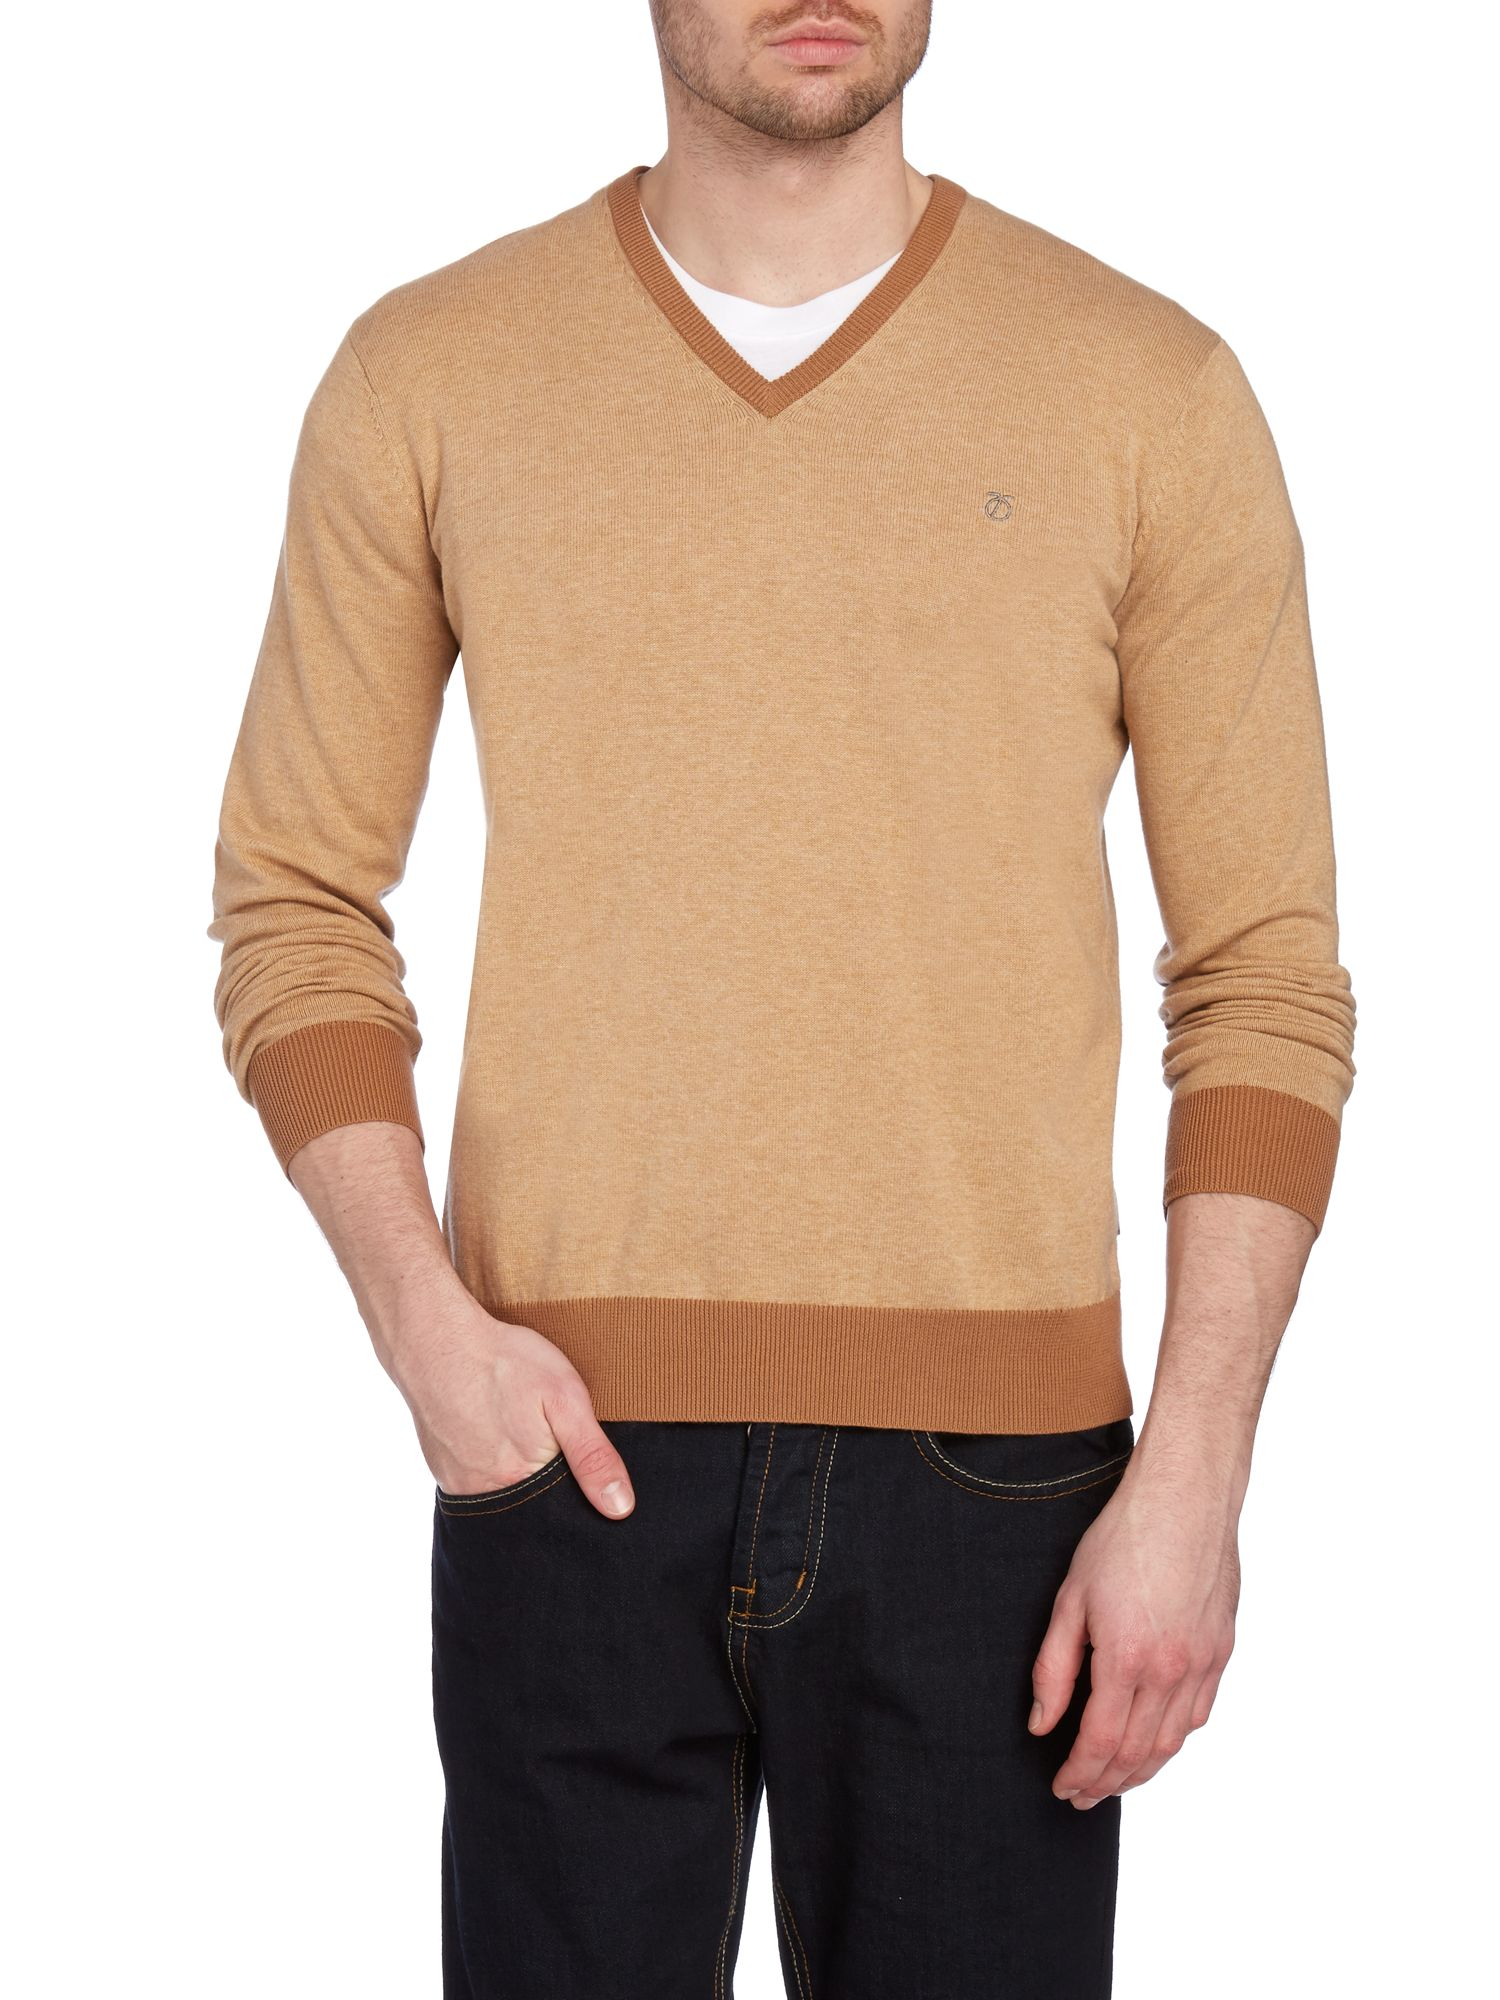 Sutton cut v-neck jumper